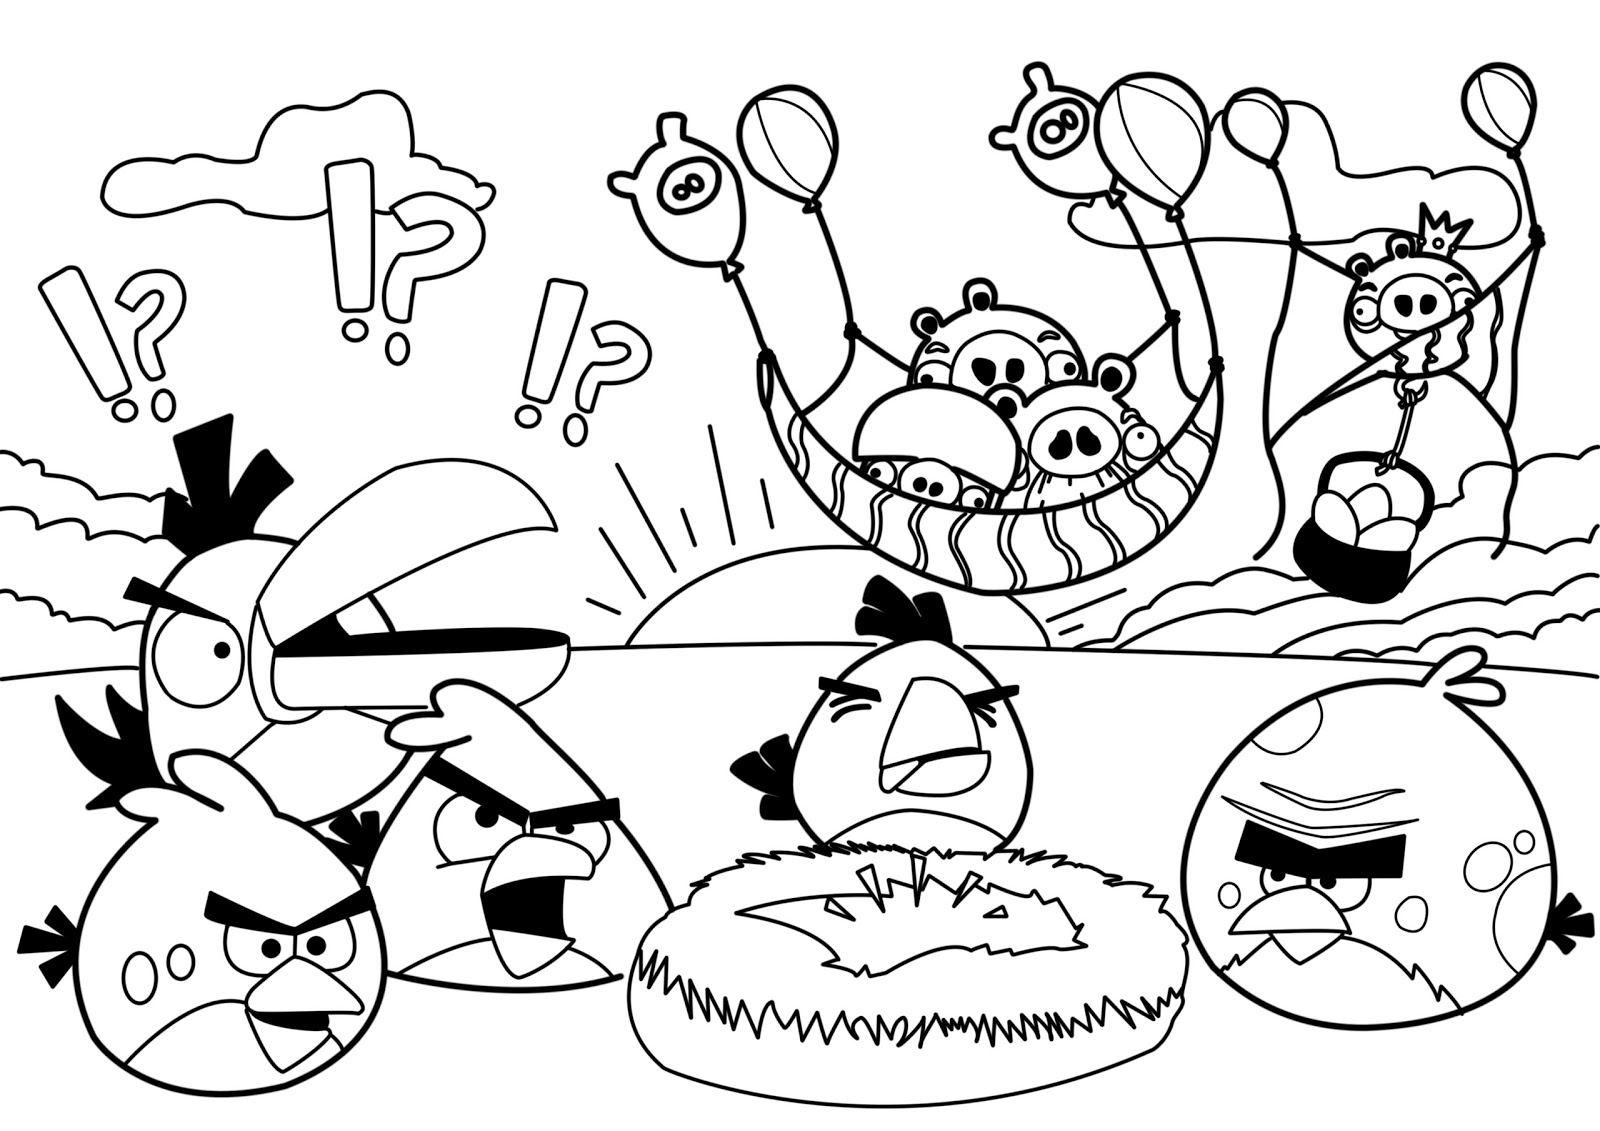 coloring pages angry birds printable - photo#25